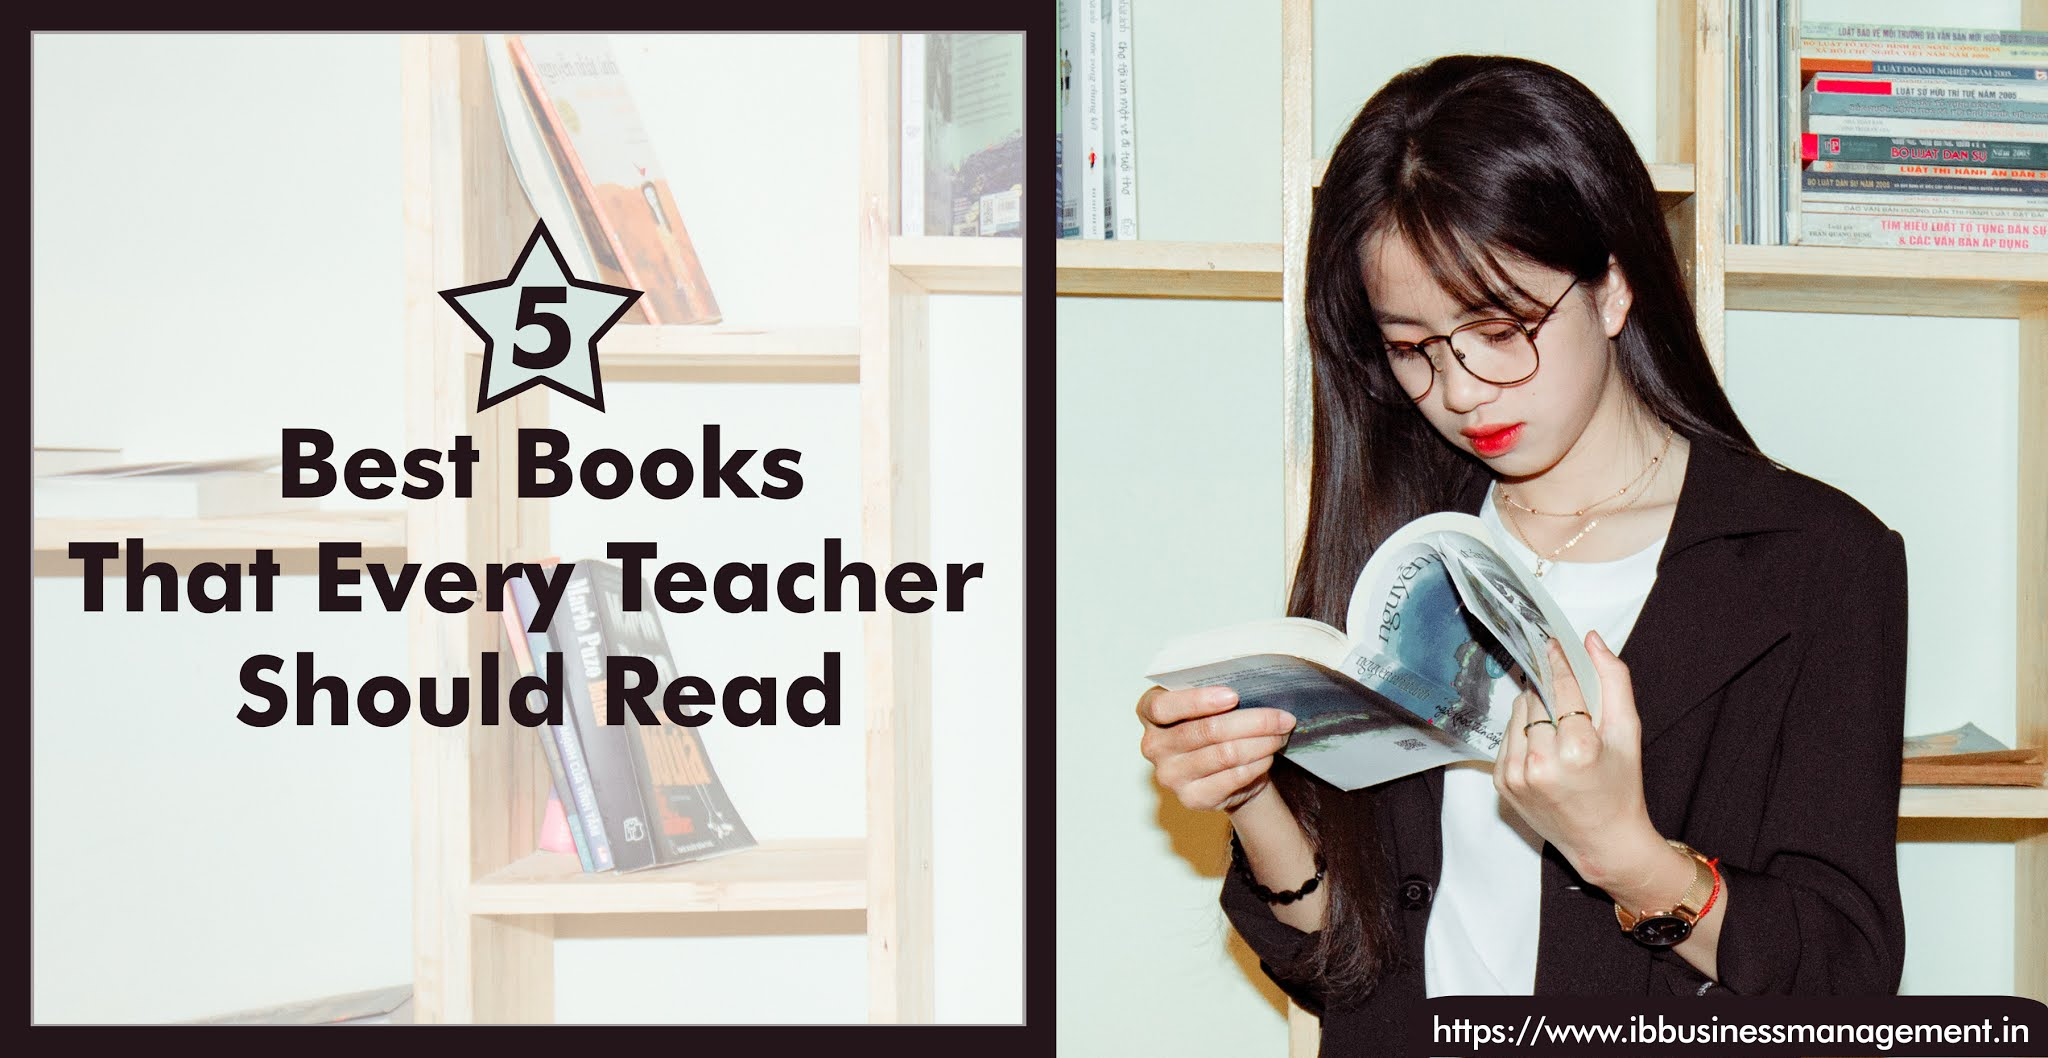 5 Best Books That Every Teacher Should Read